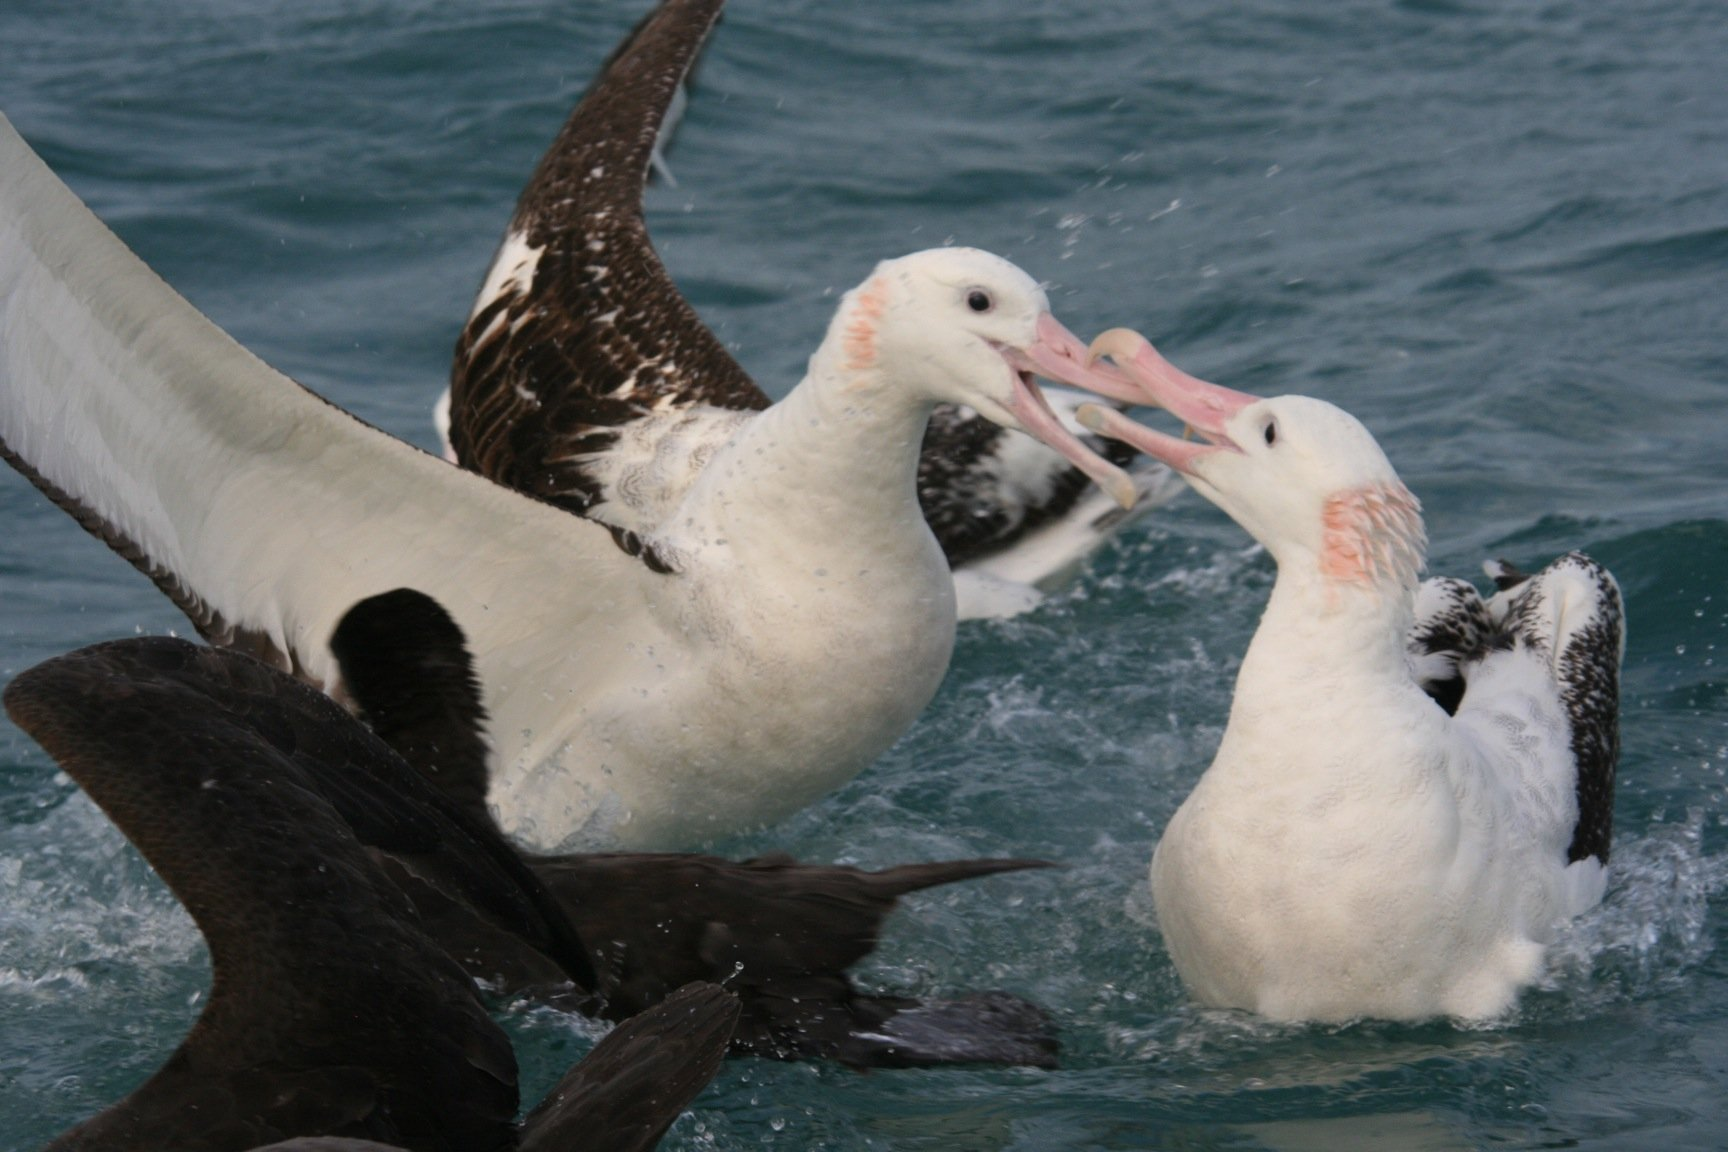 Antipodean albatross fight